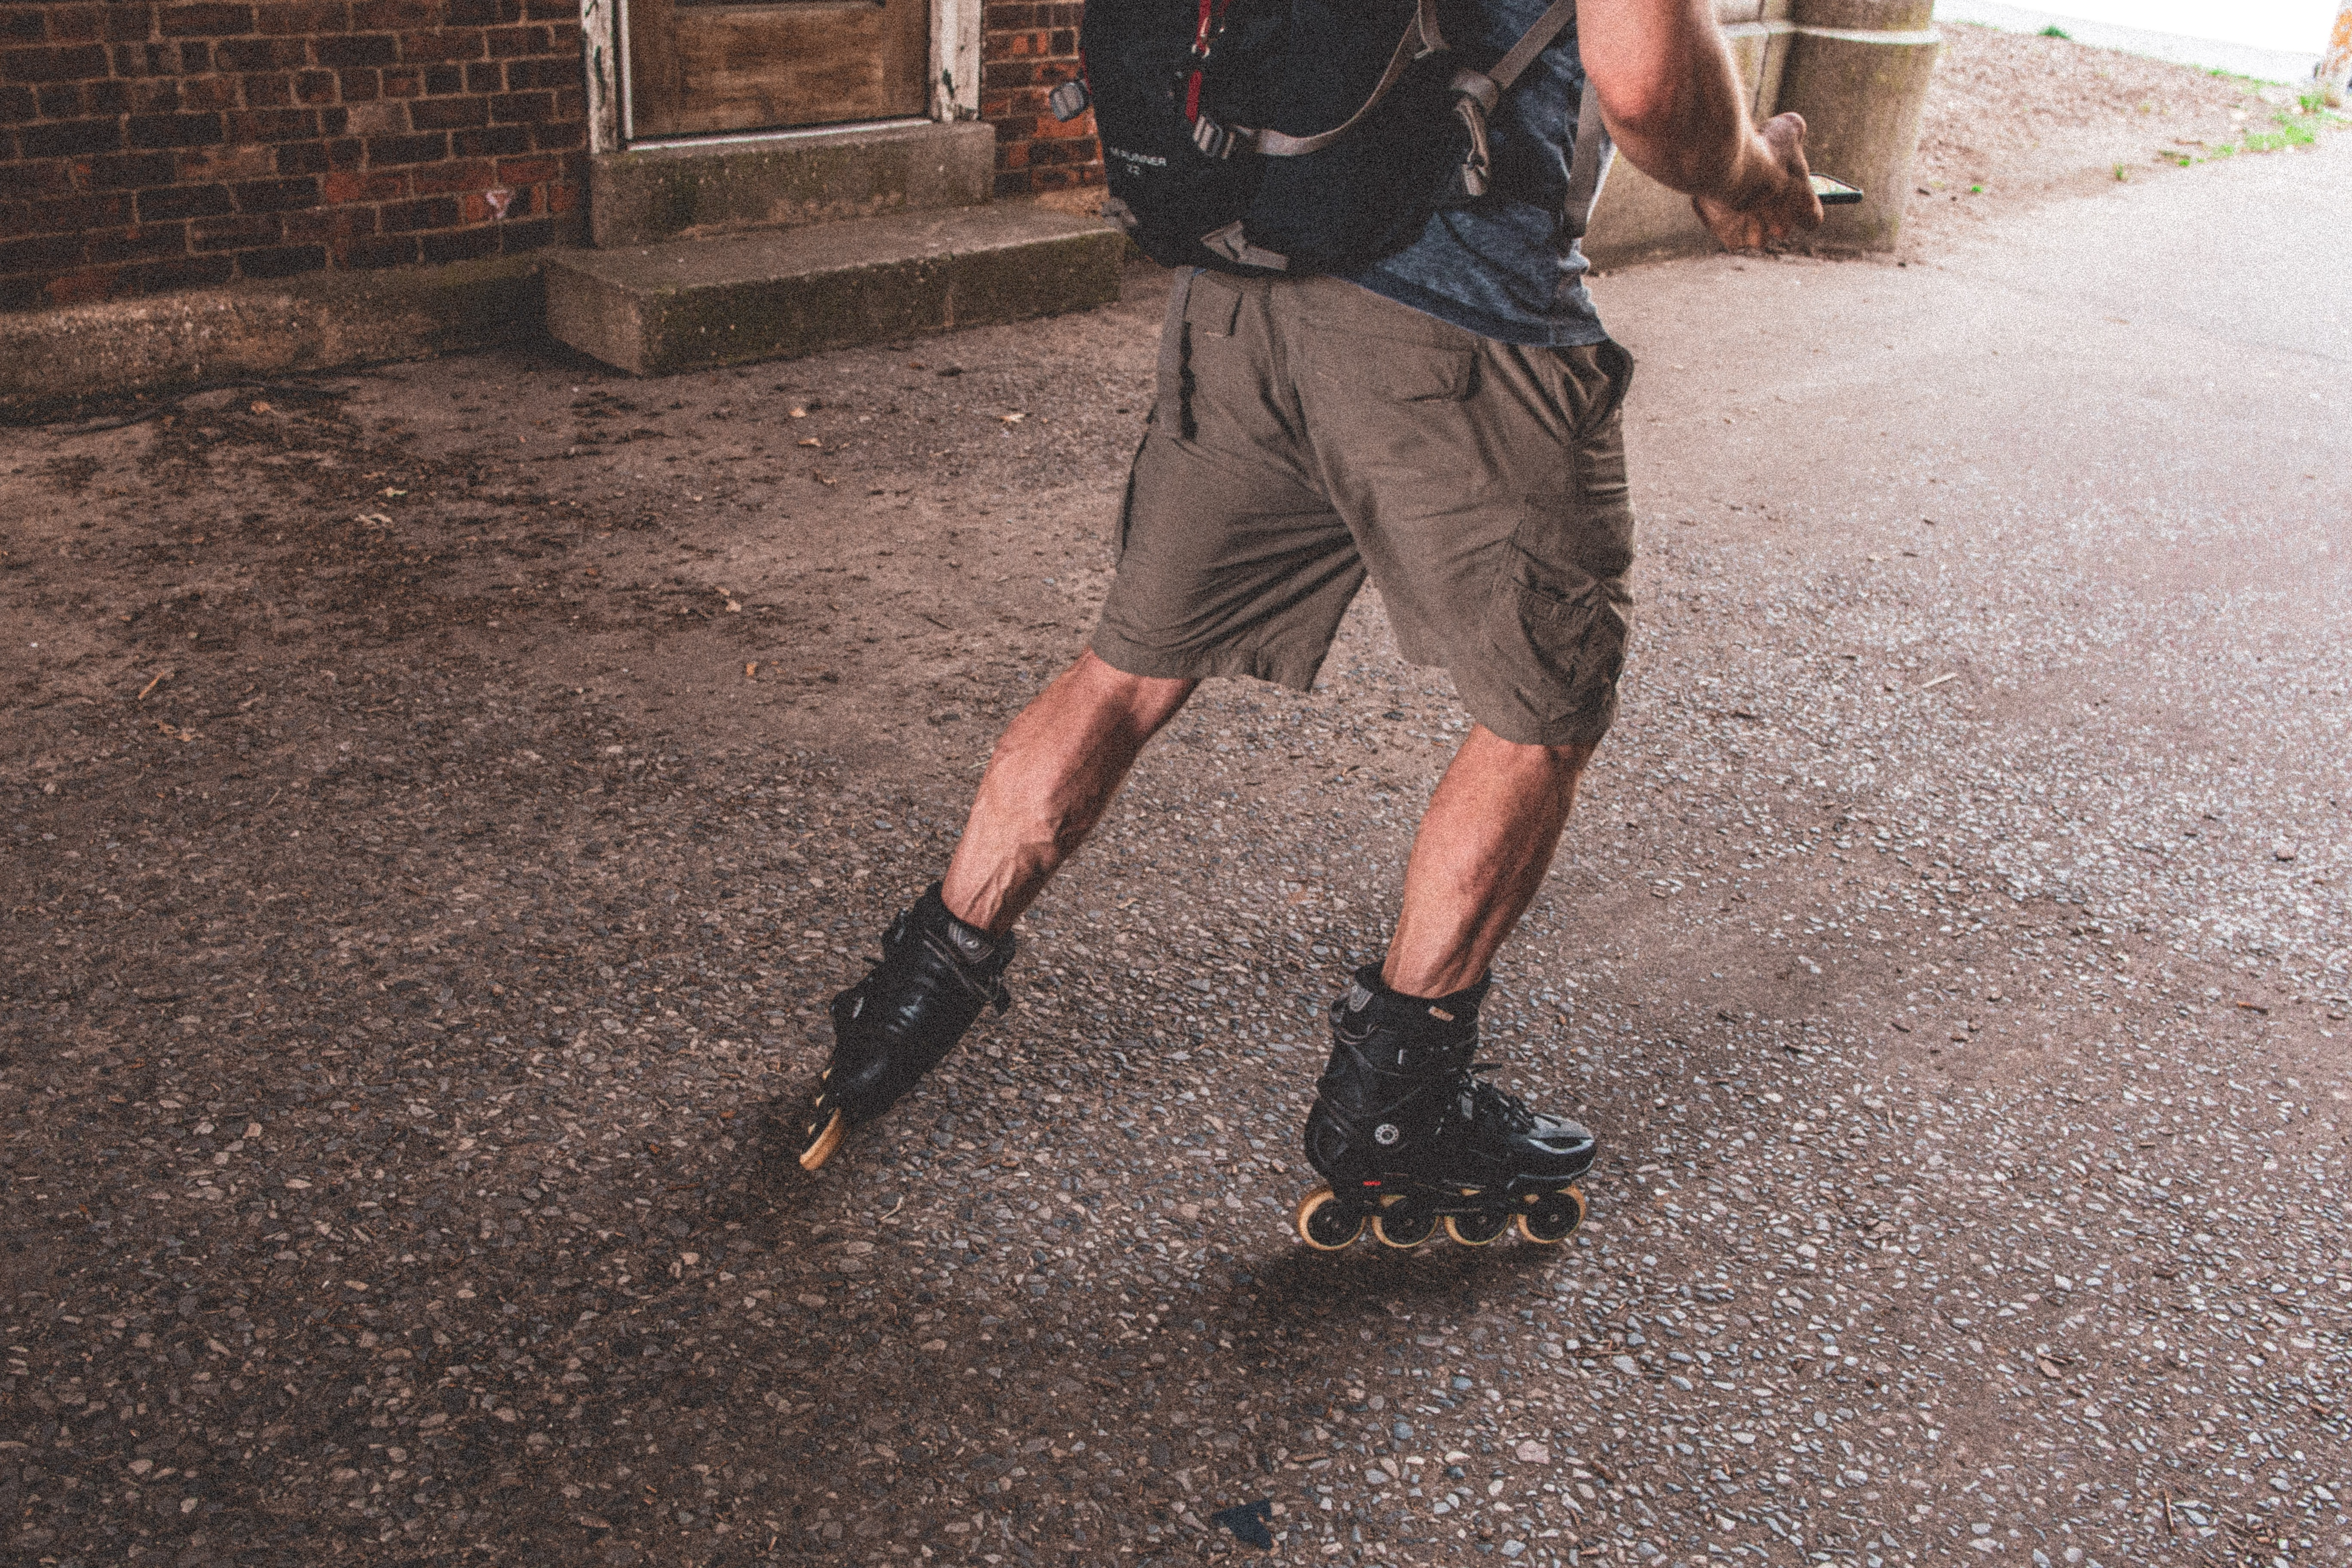 How To Build Custom Roller Skates From Old Shoes